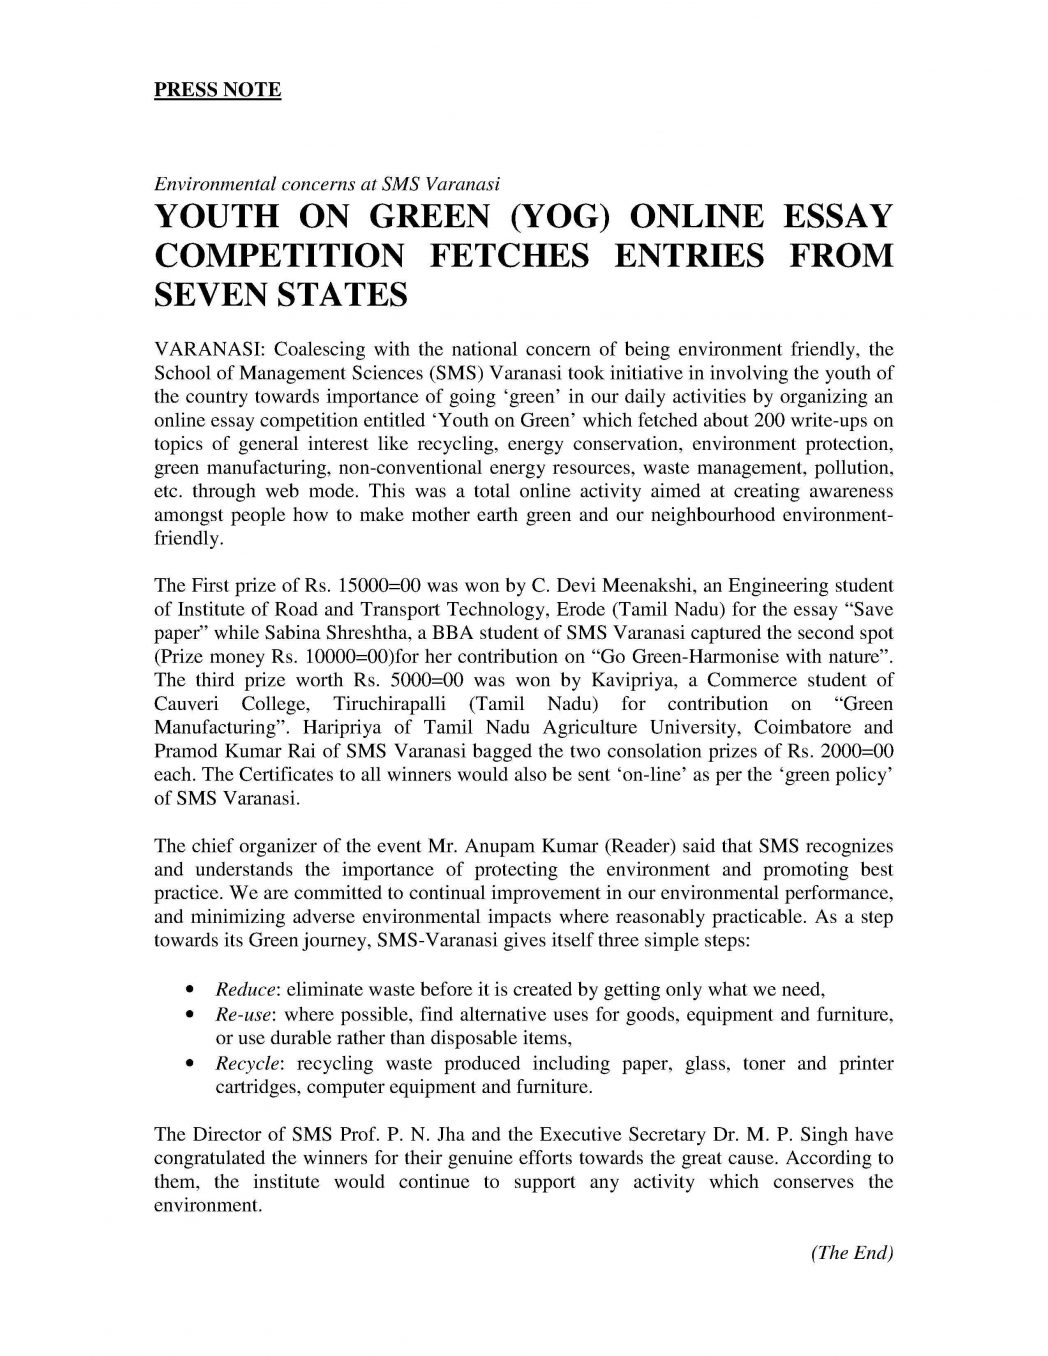 007 Environmental Protection Essay Example Essays On Good Habits Writing Skills Online Yog Press Re Bryant And Clark Canadian Book Process Styles Experience Stupendous In Tamil English Pdf Hindi Full